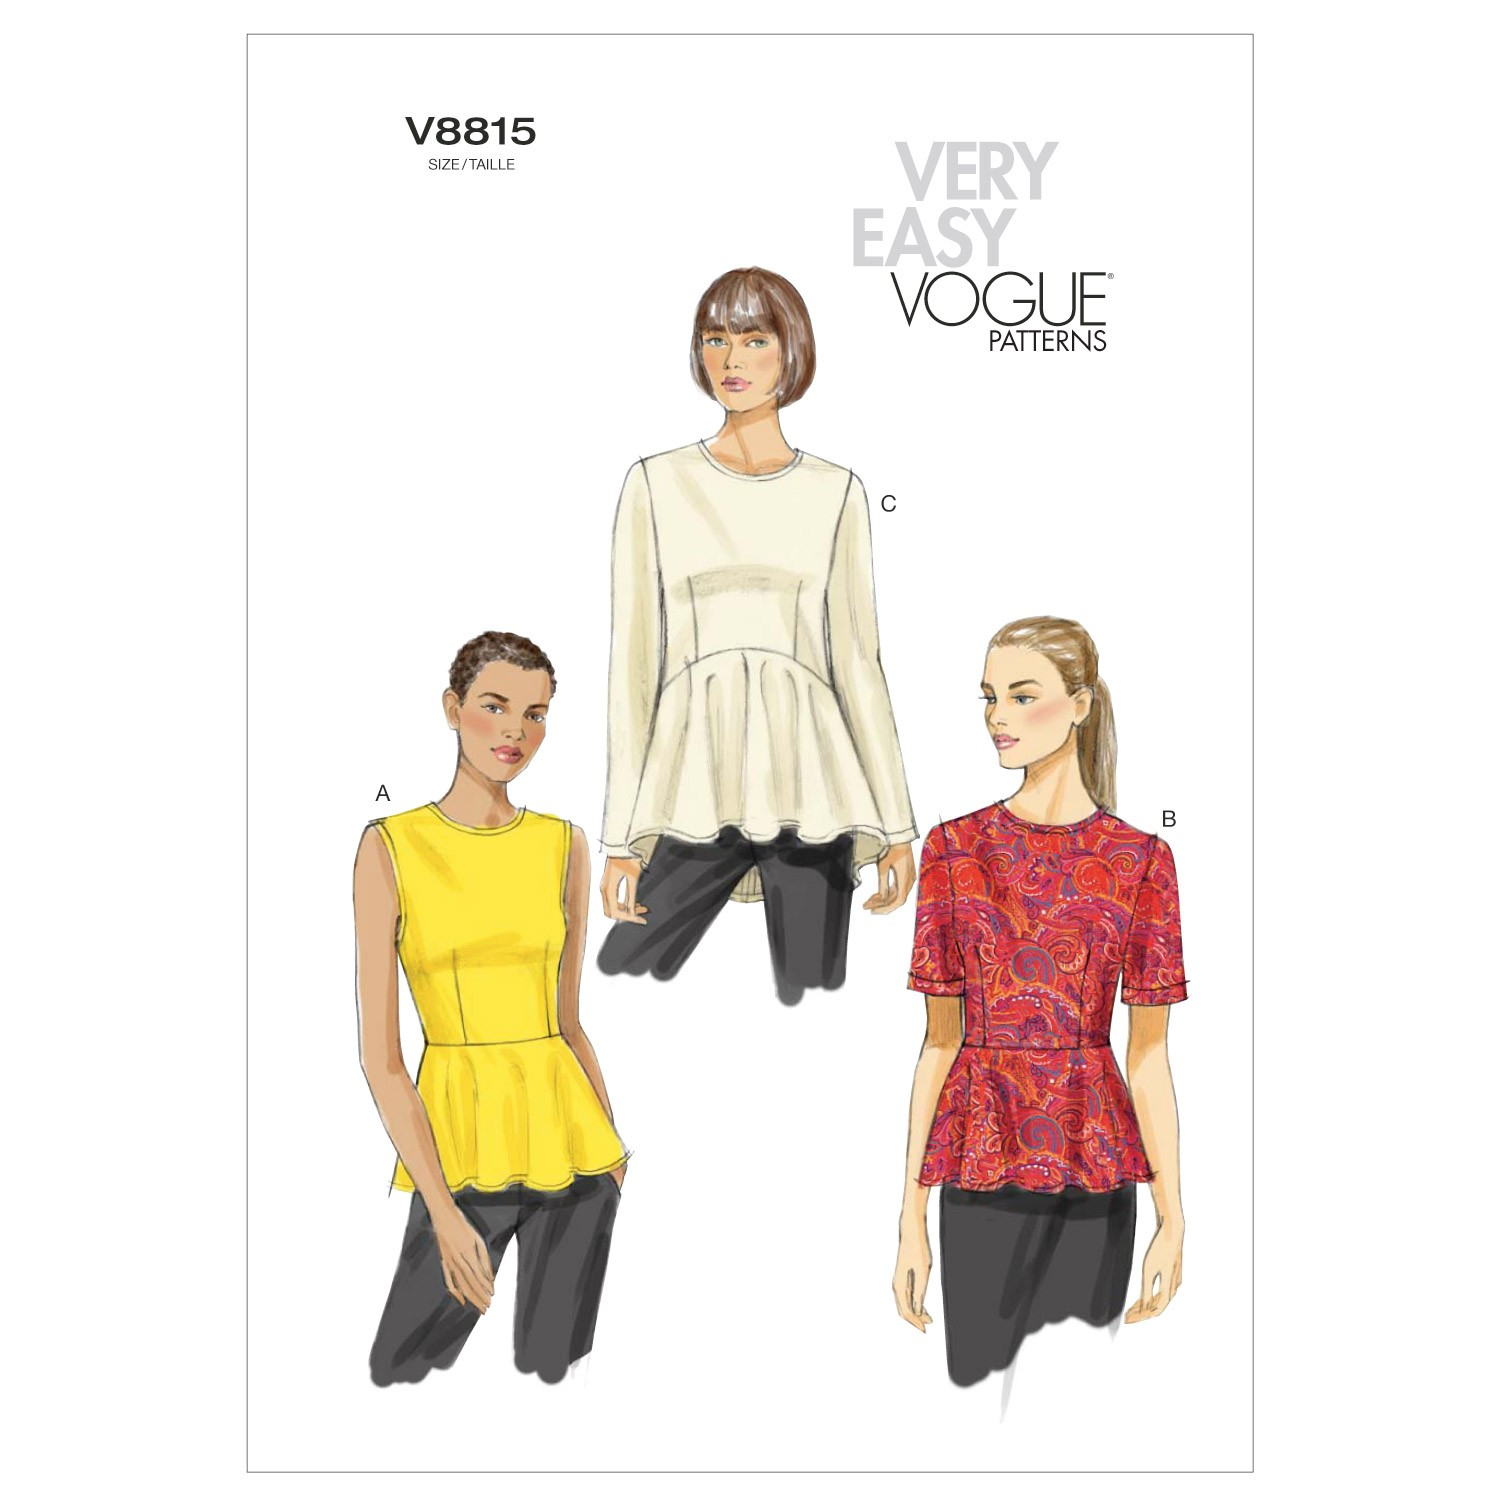 Vogue Sewing Pattern V8815 Women's Peplum Top